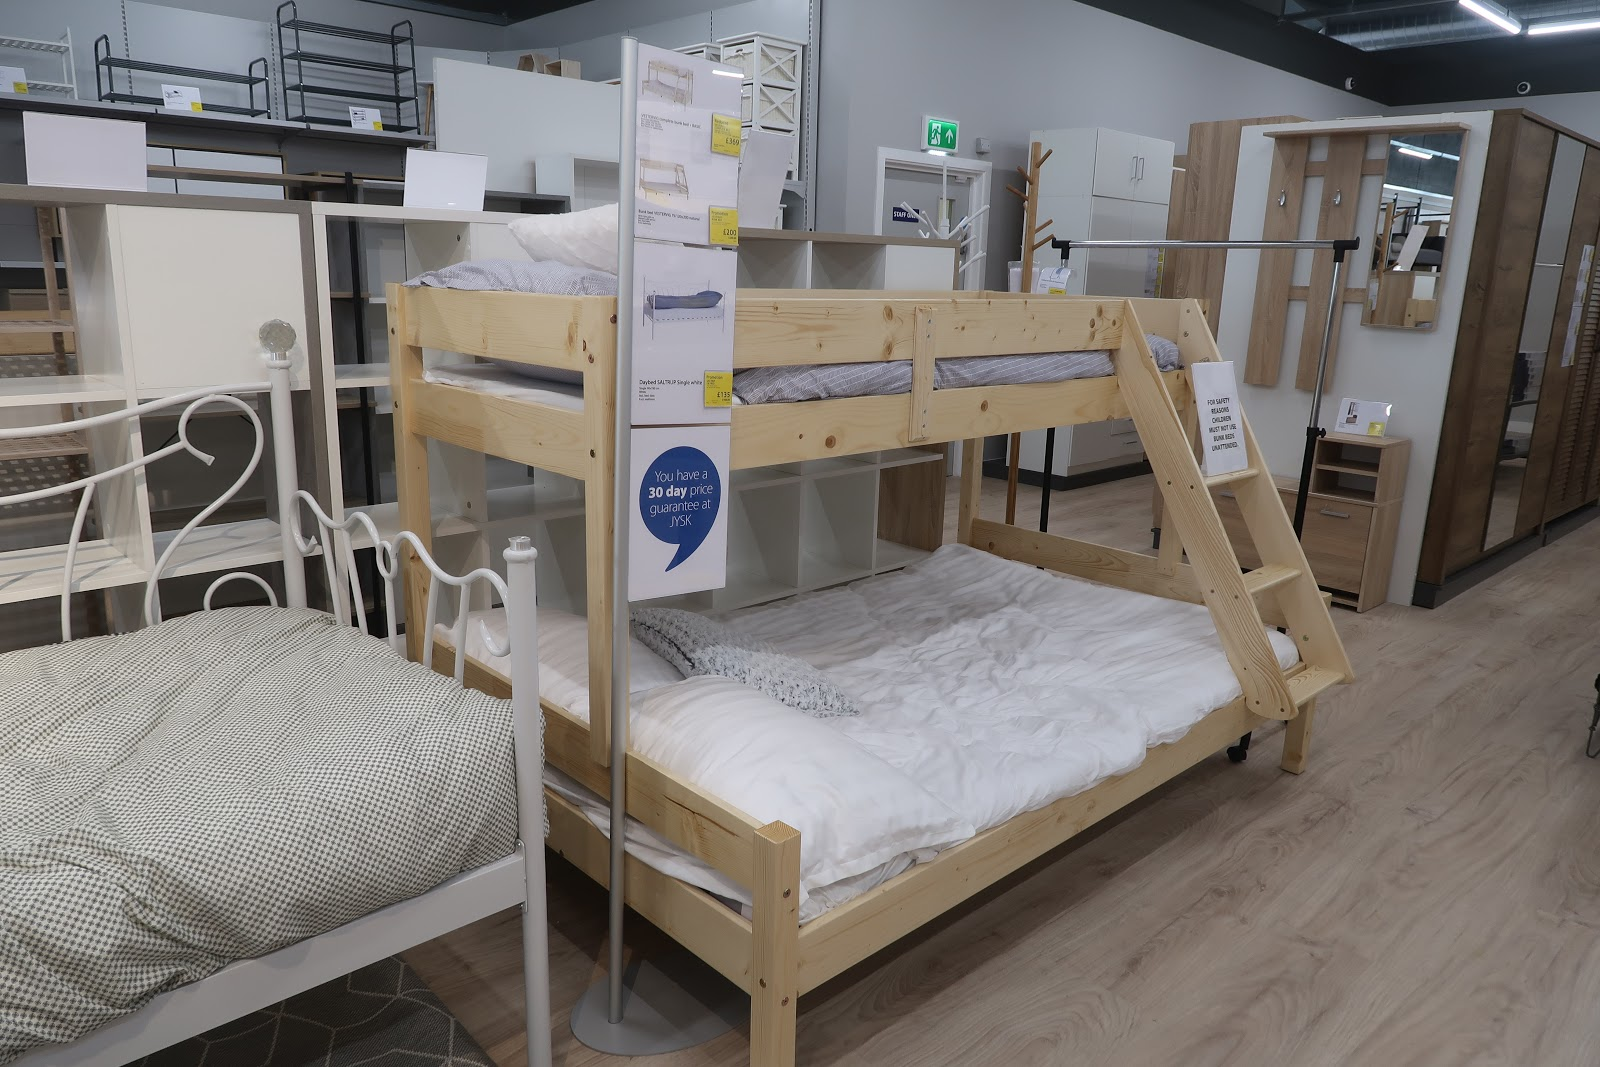 jysk-bunk-bed